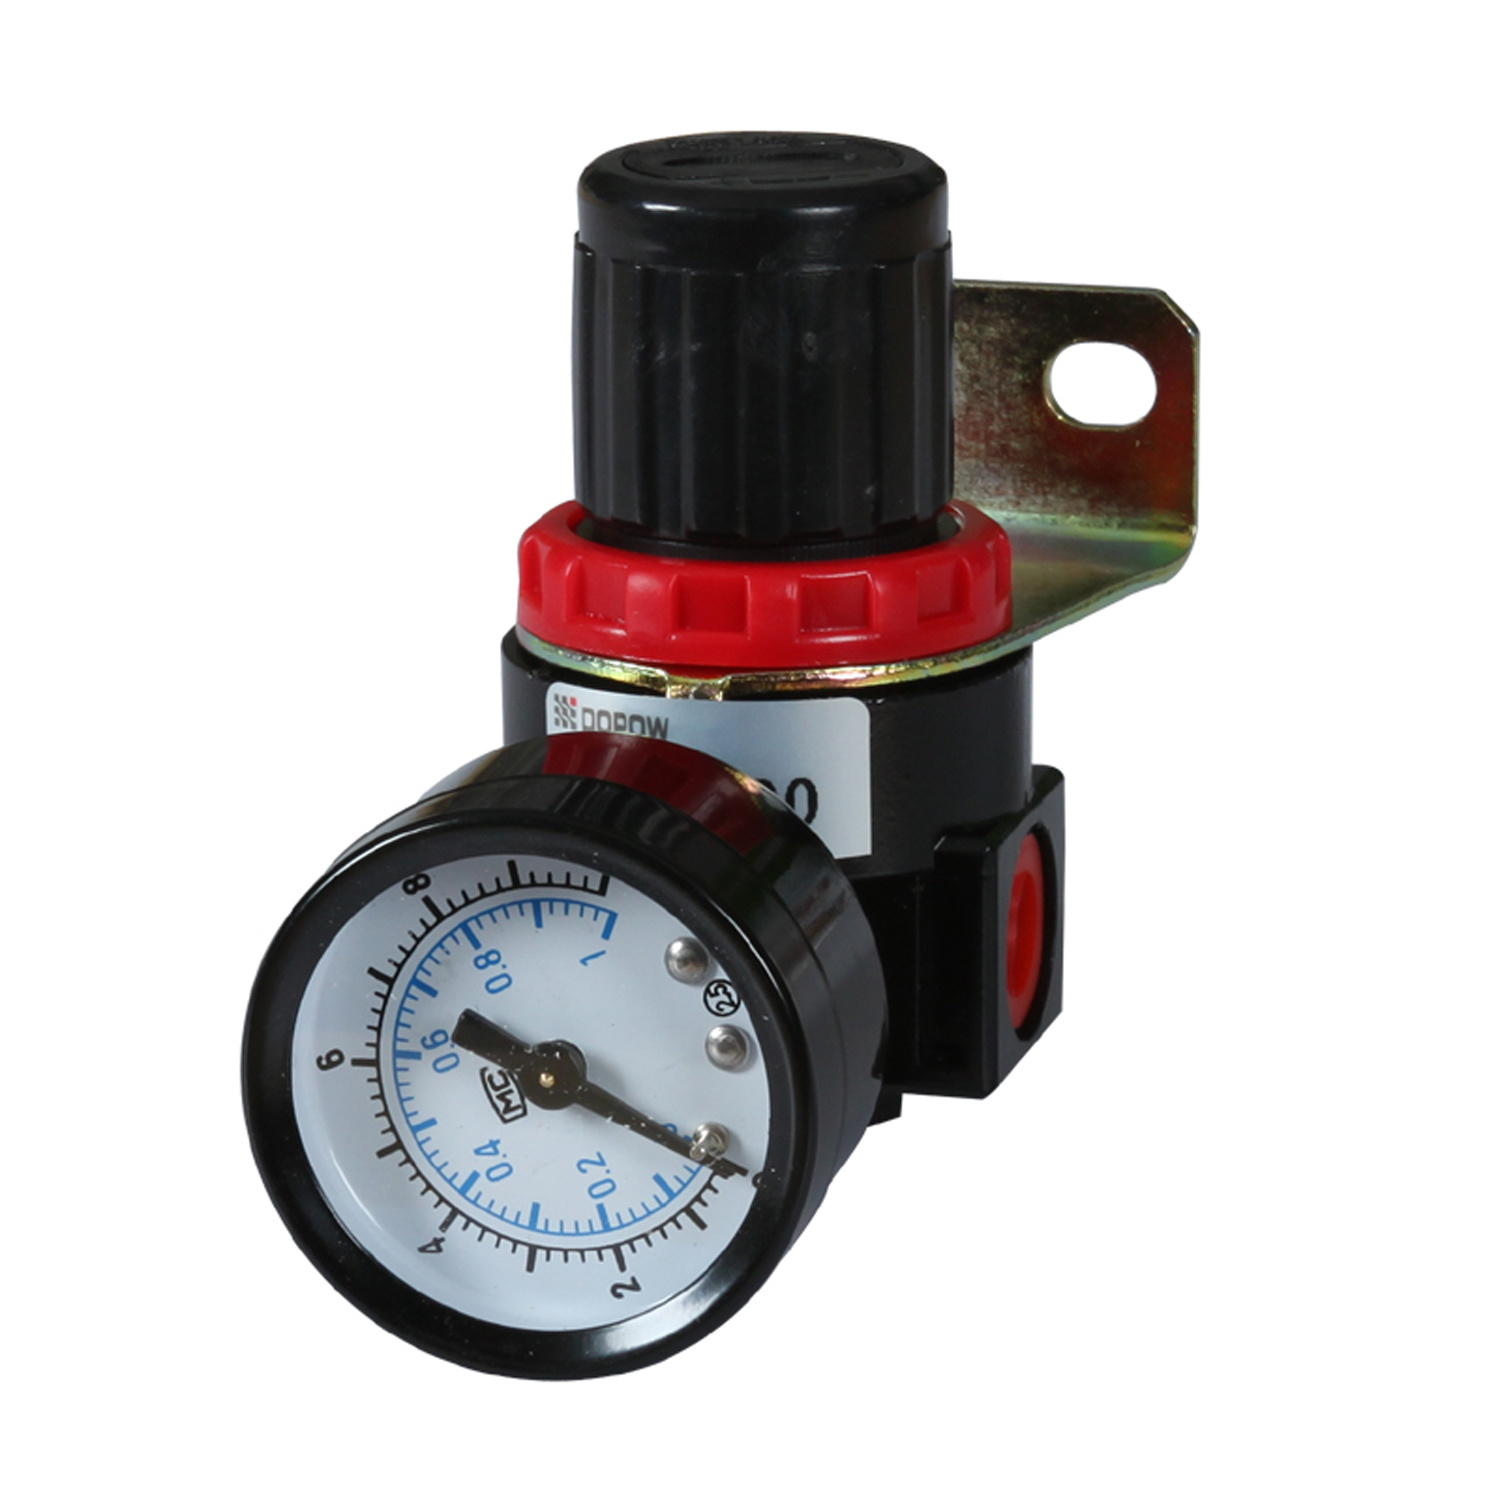 Dopow Ar Br2000 Air Regulator with Gauge Bracket G1/8""